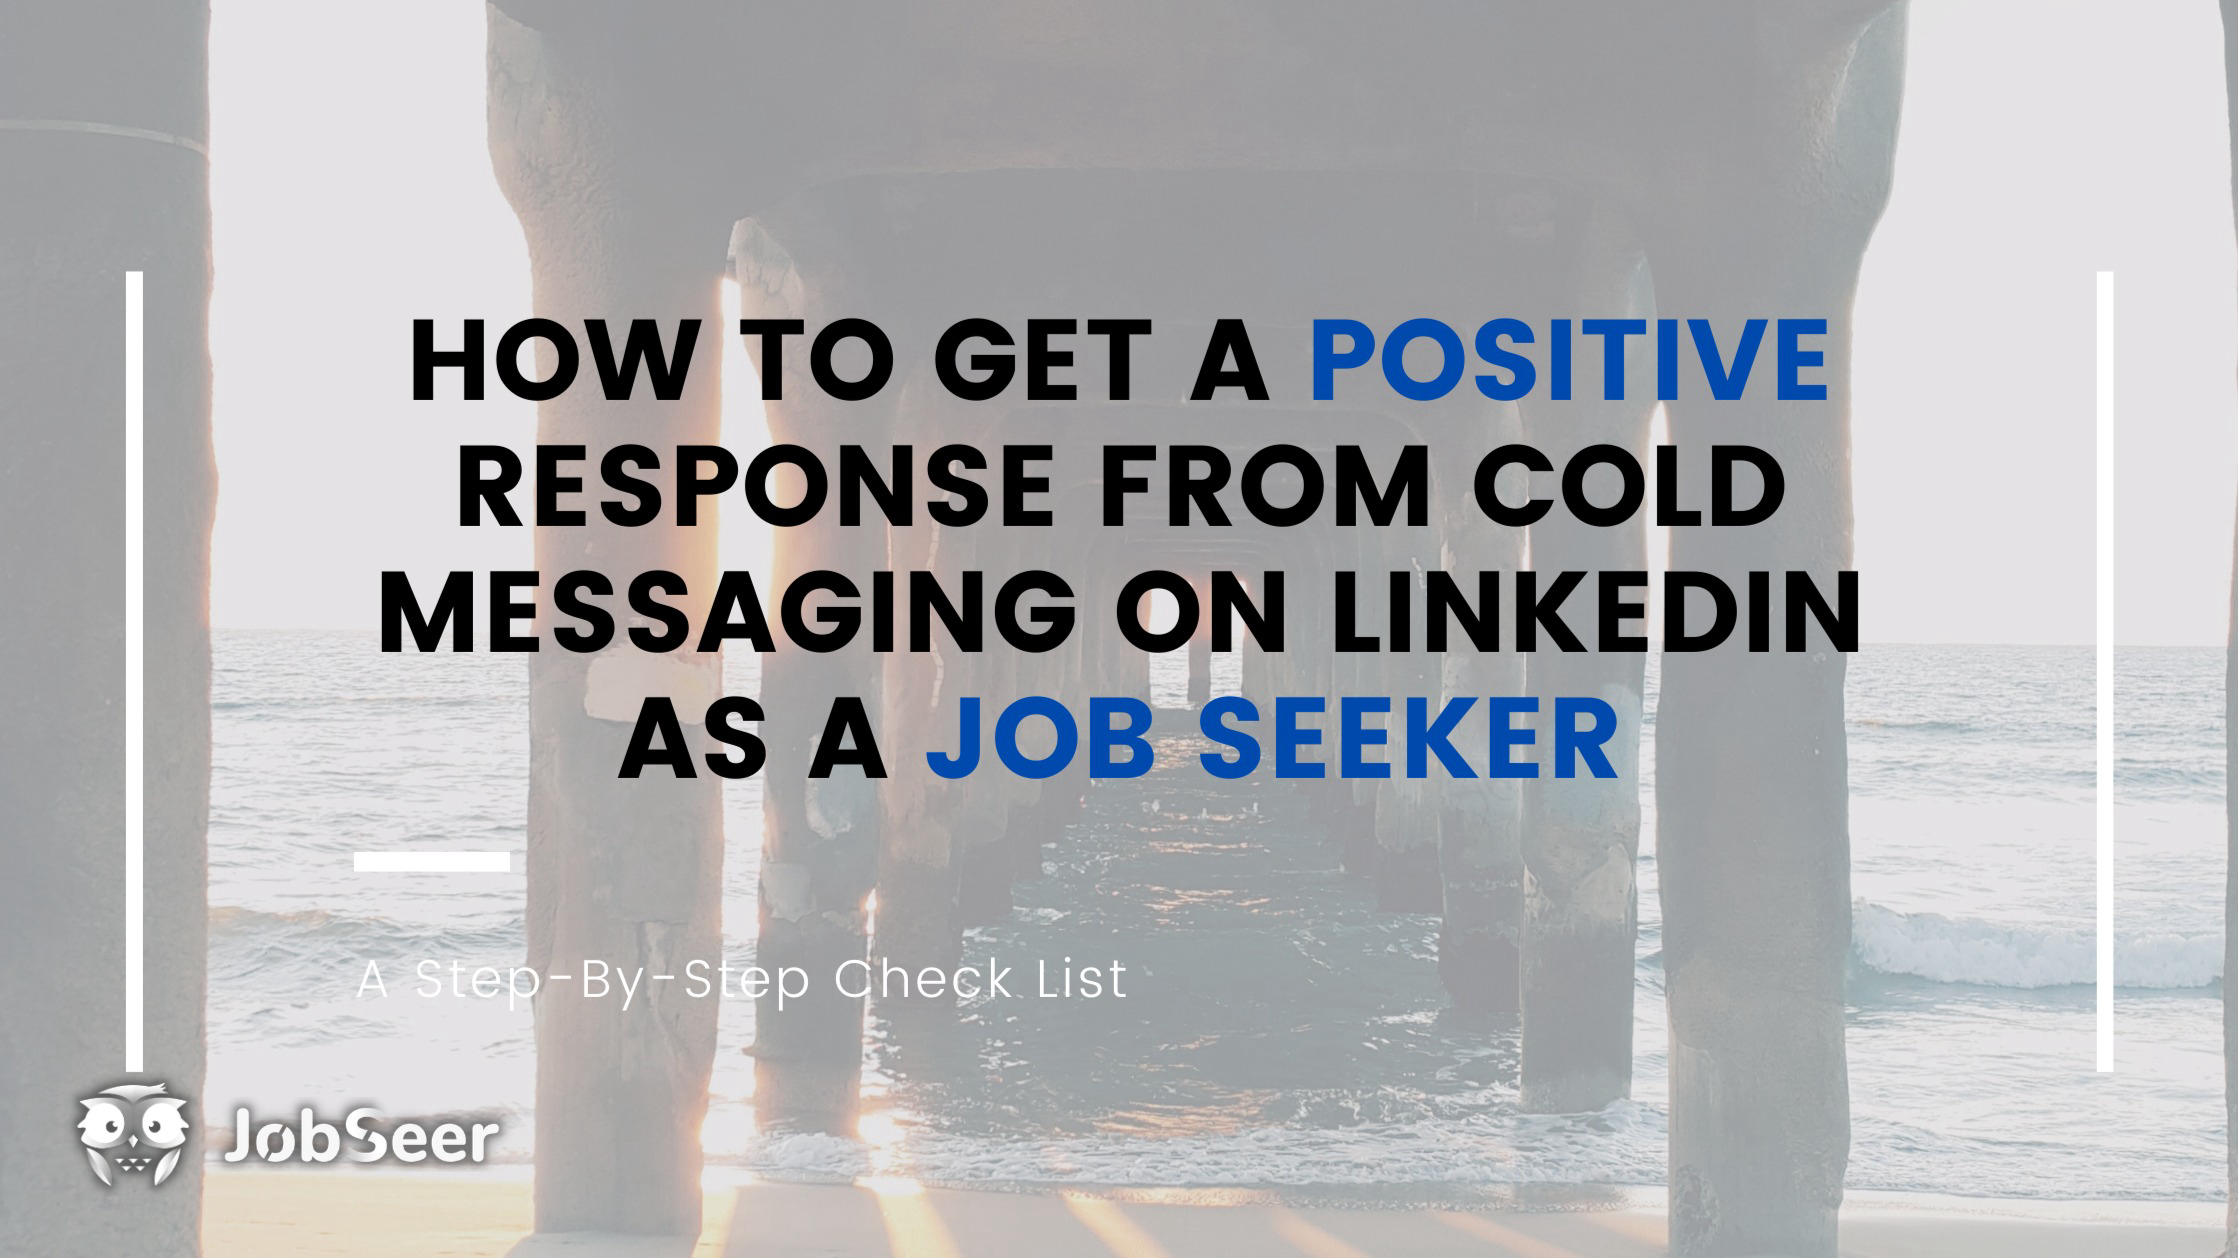 how-to-get-a-positive-response-from-cold-messaging-on-linkedin-as-a-job-seeker